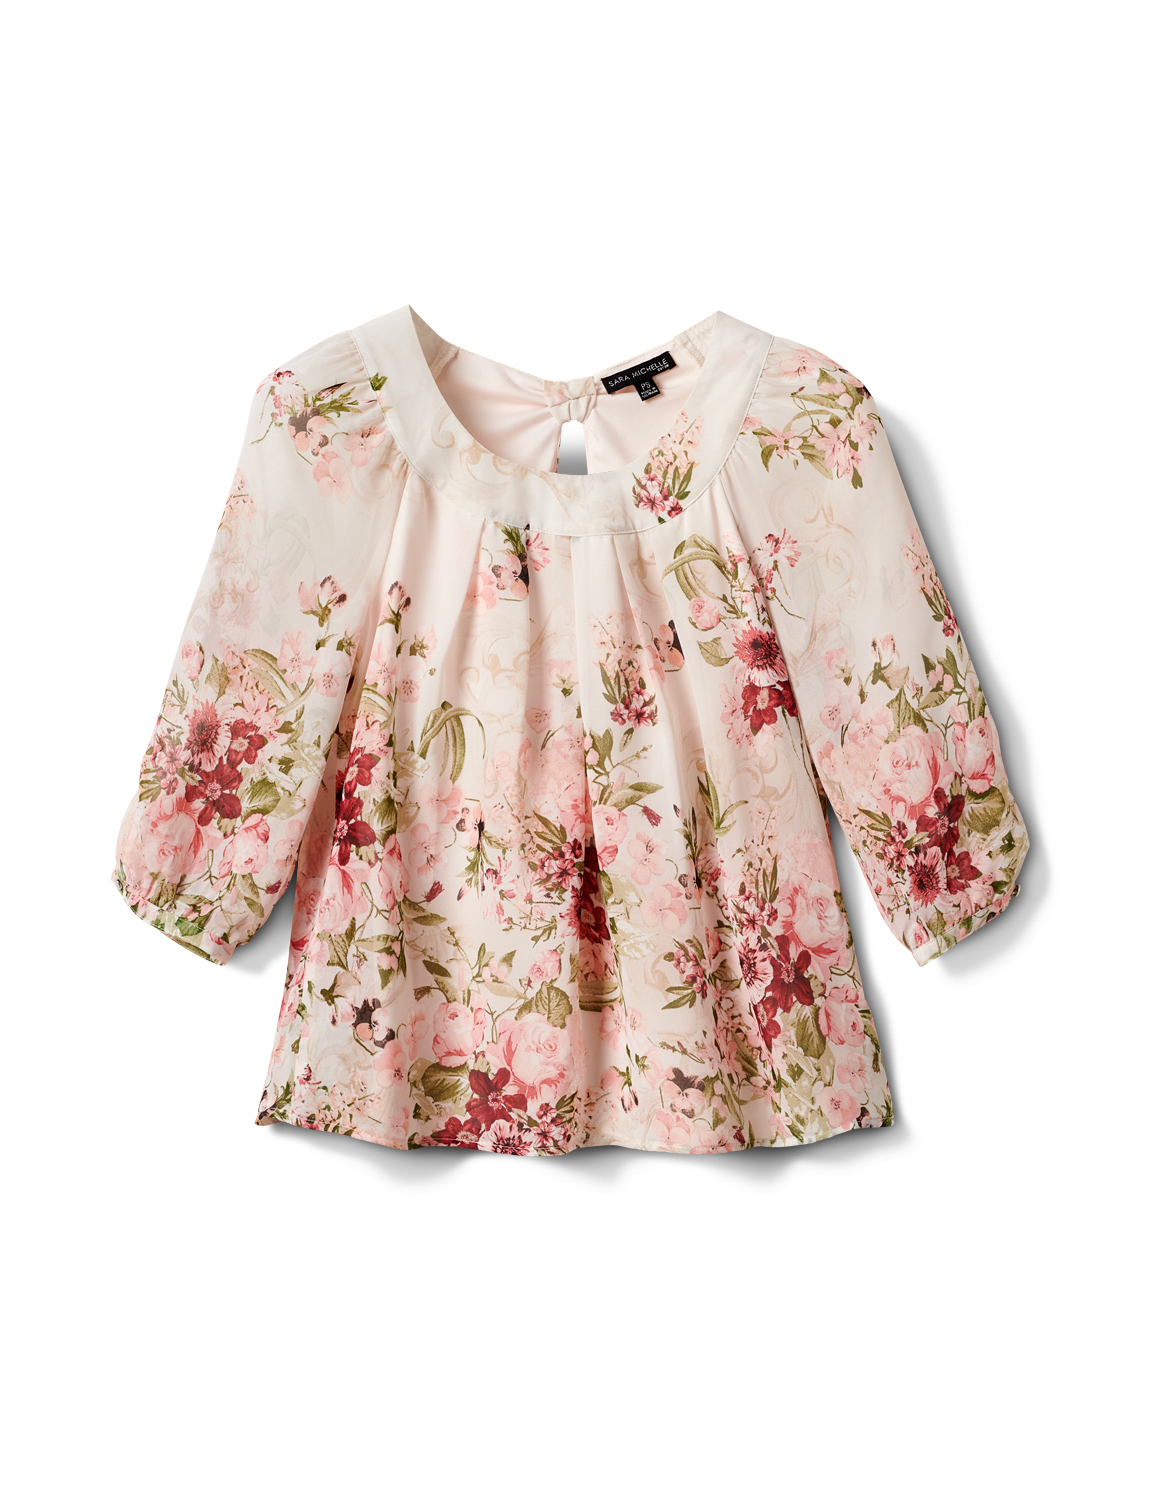 Petite Floral Border Pleated Blouse -Tan/Mauve - Front